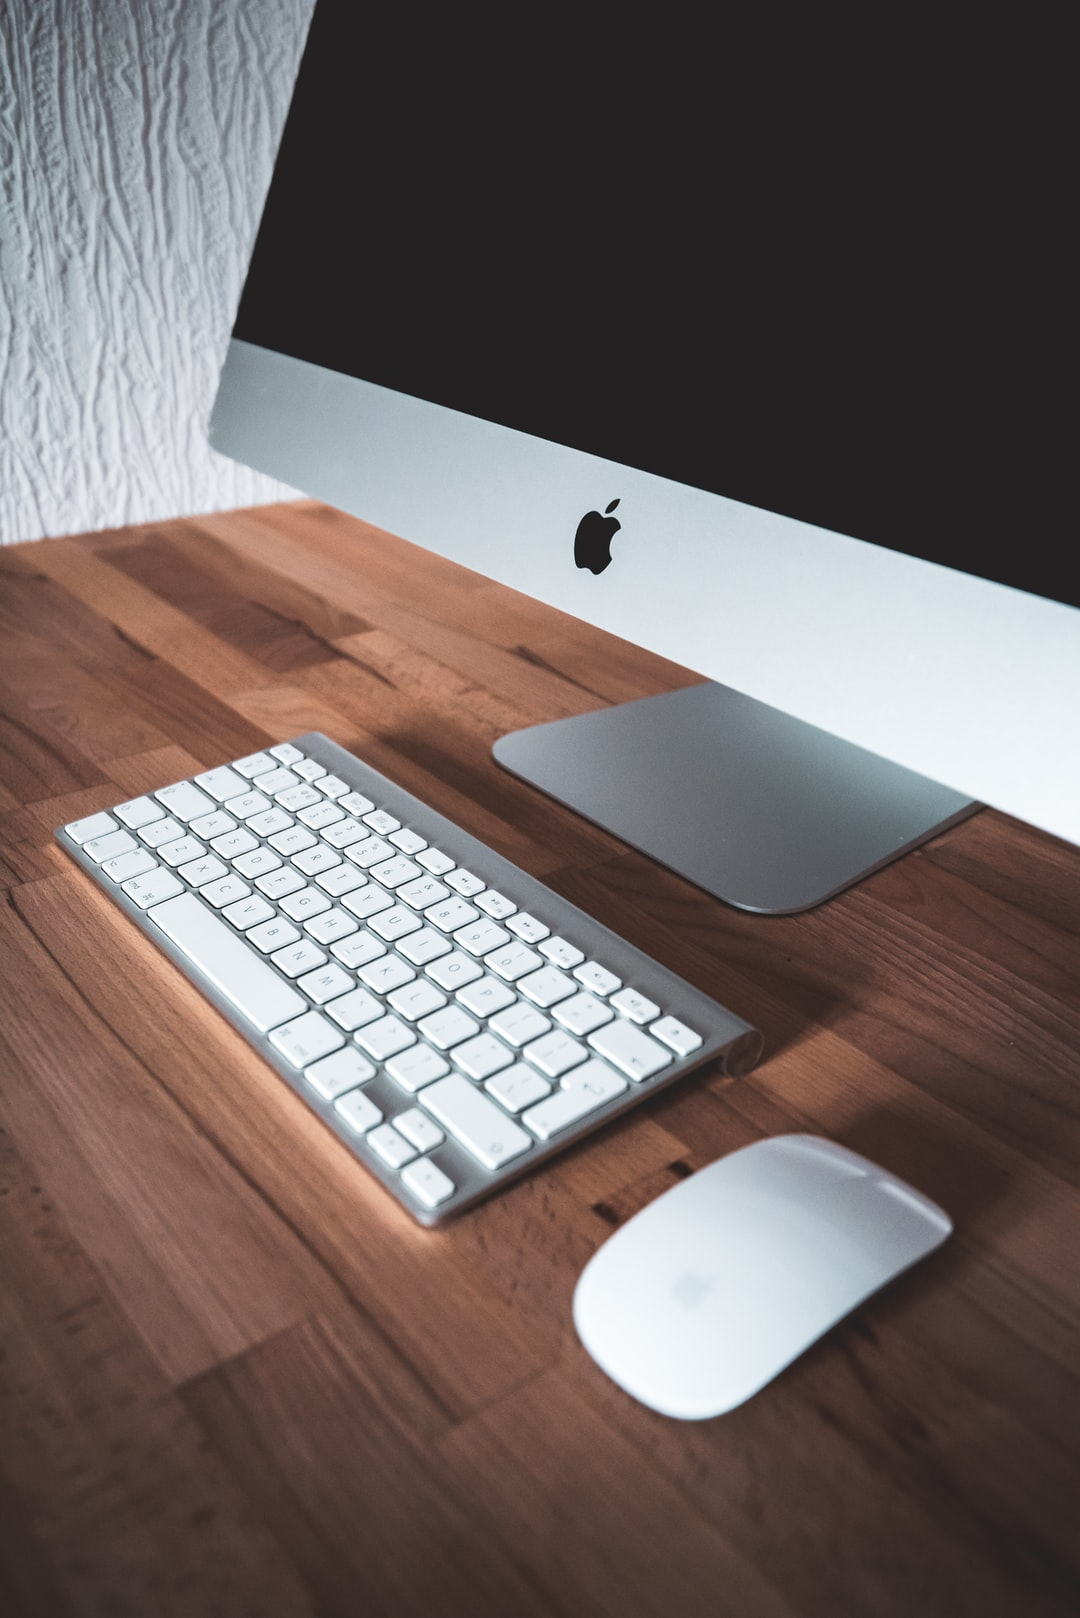 Apple iMac with keyboard and mouse on a clean desk